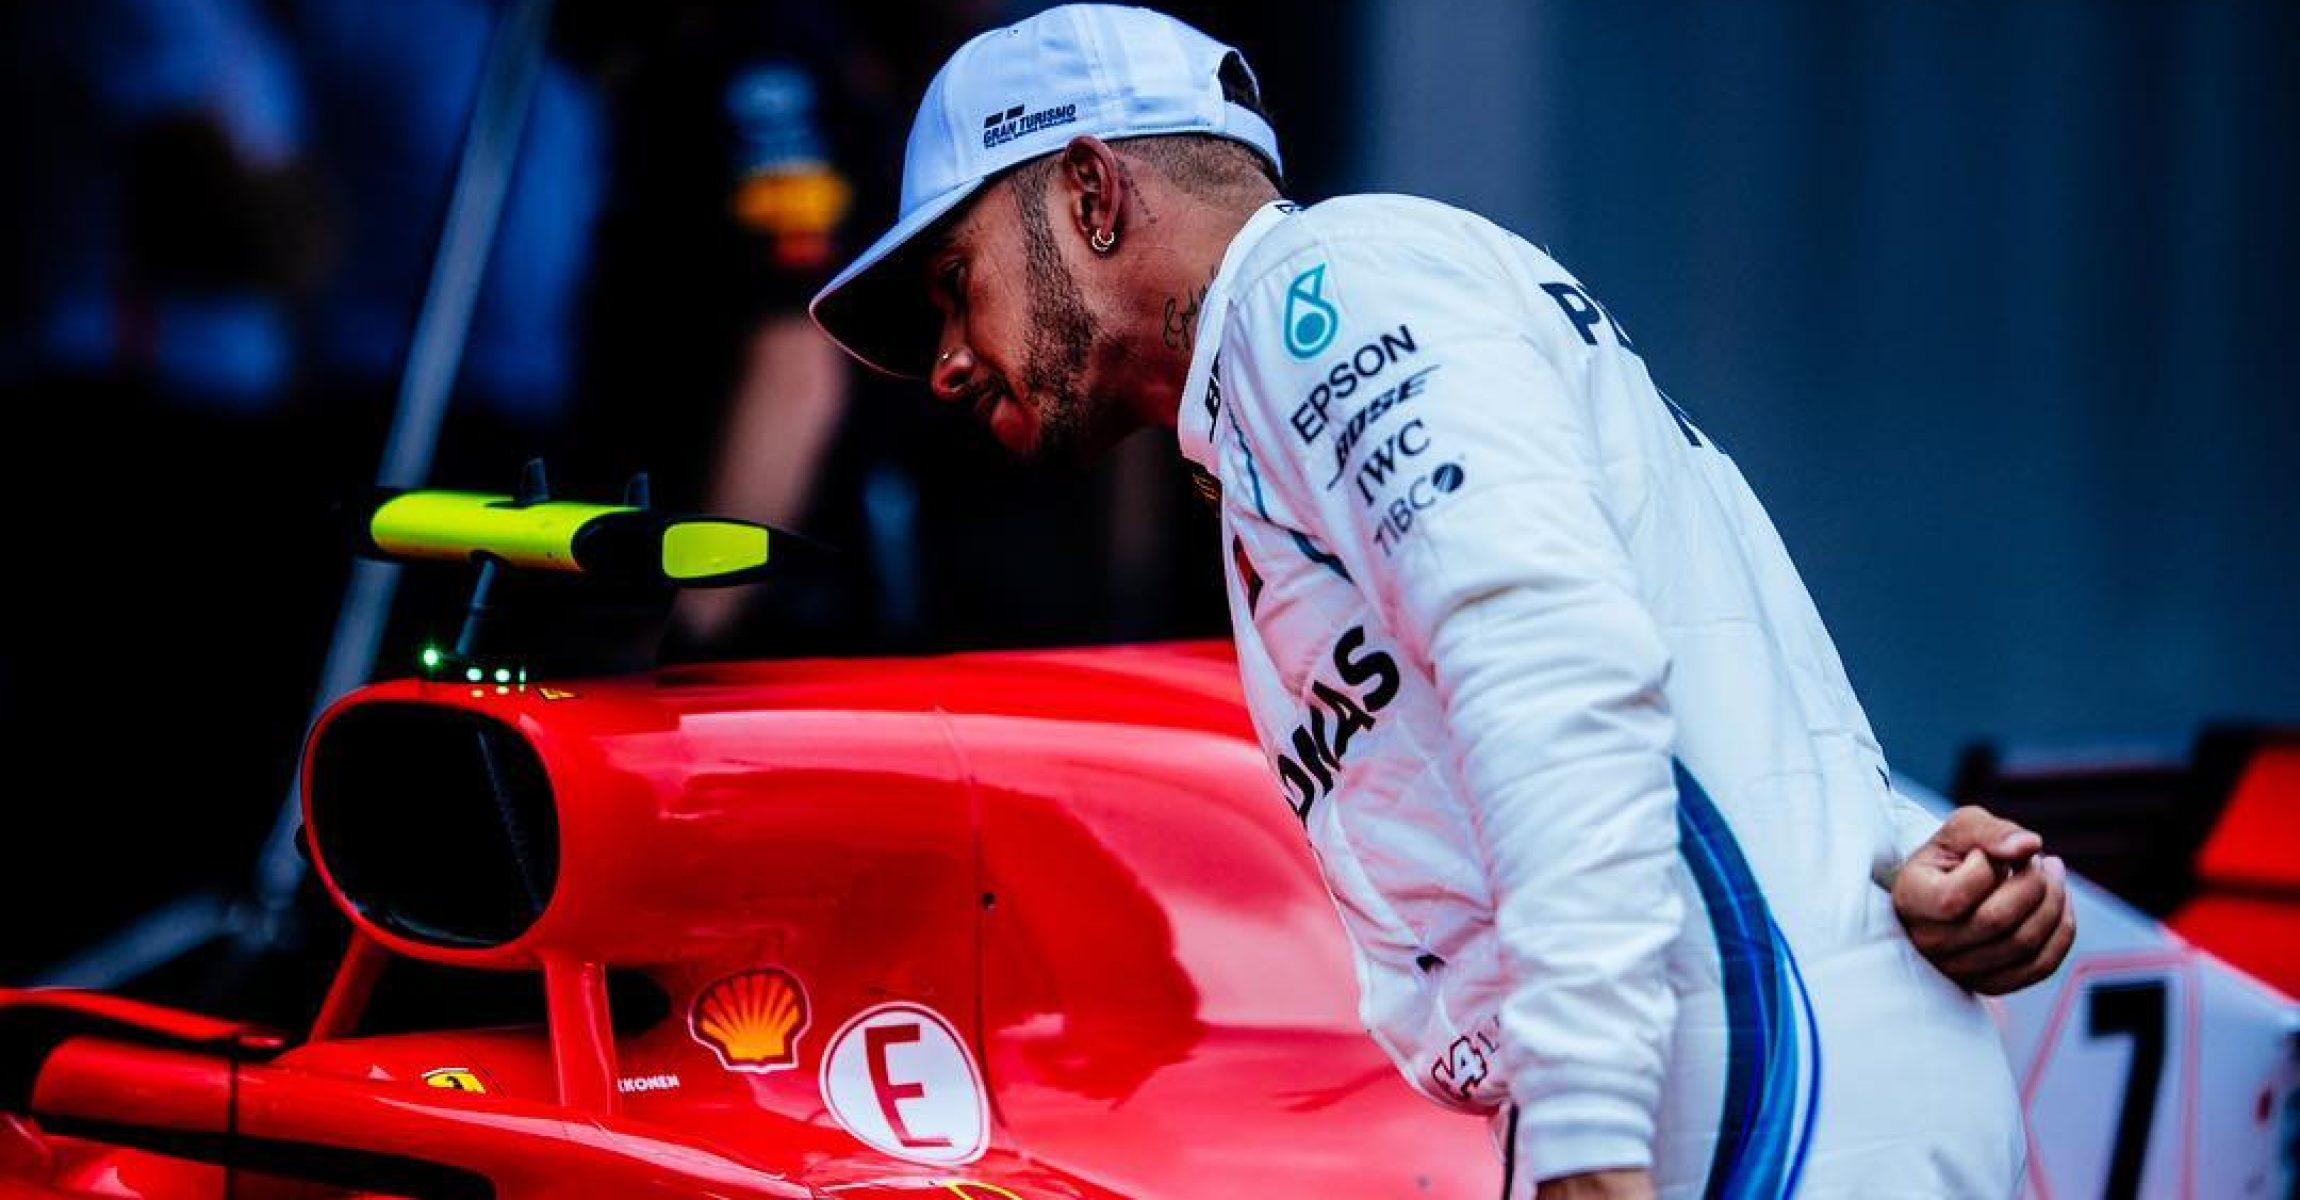 Lewis Hamilton (Mercedes) checks Ferrari's car at the end of the qualifying session during the Spanish Grand Prix in Barcelona (2018)